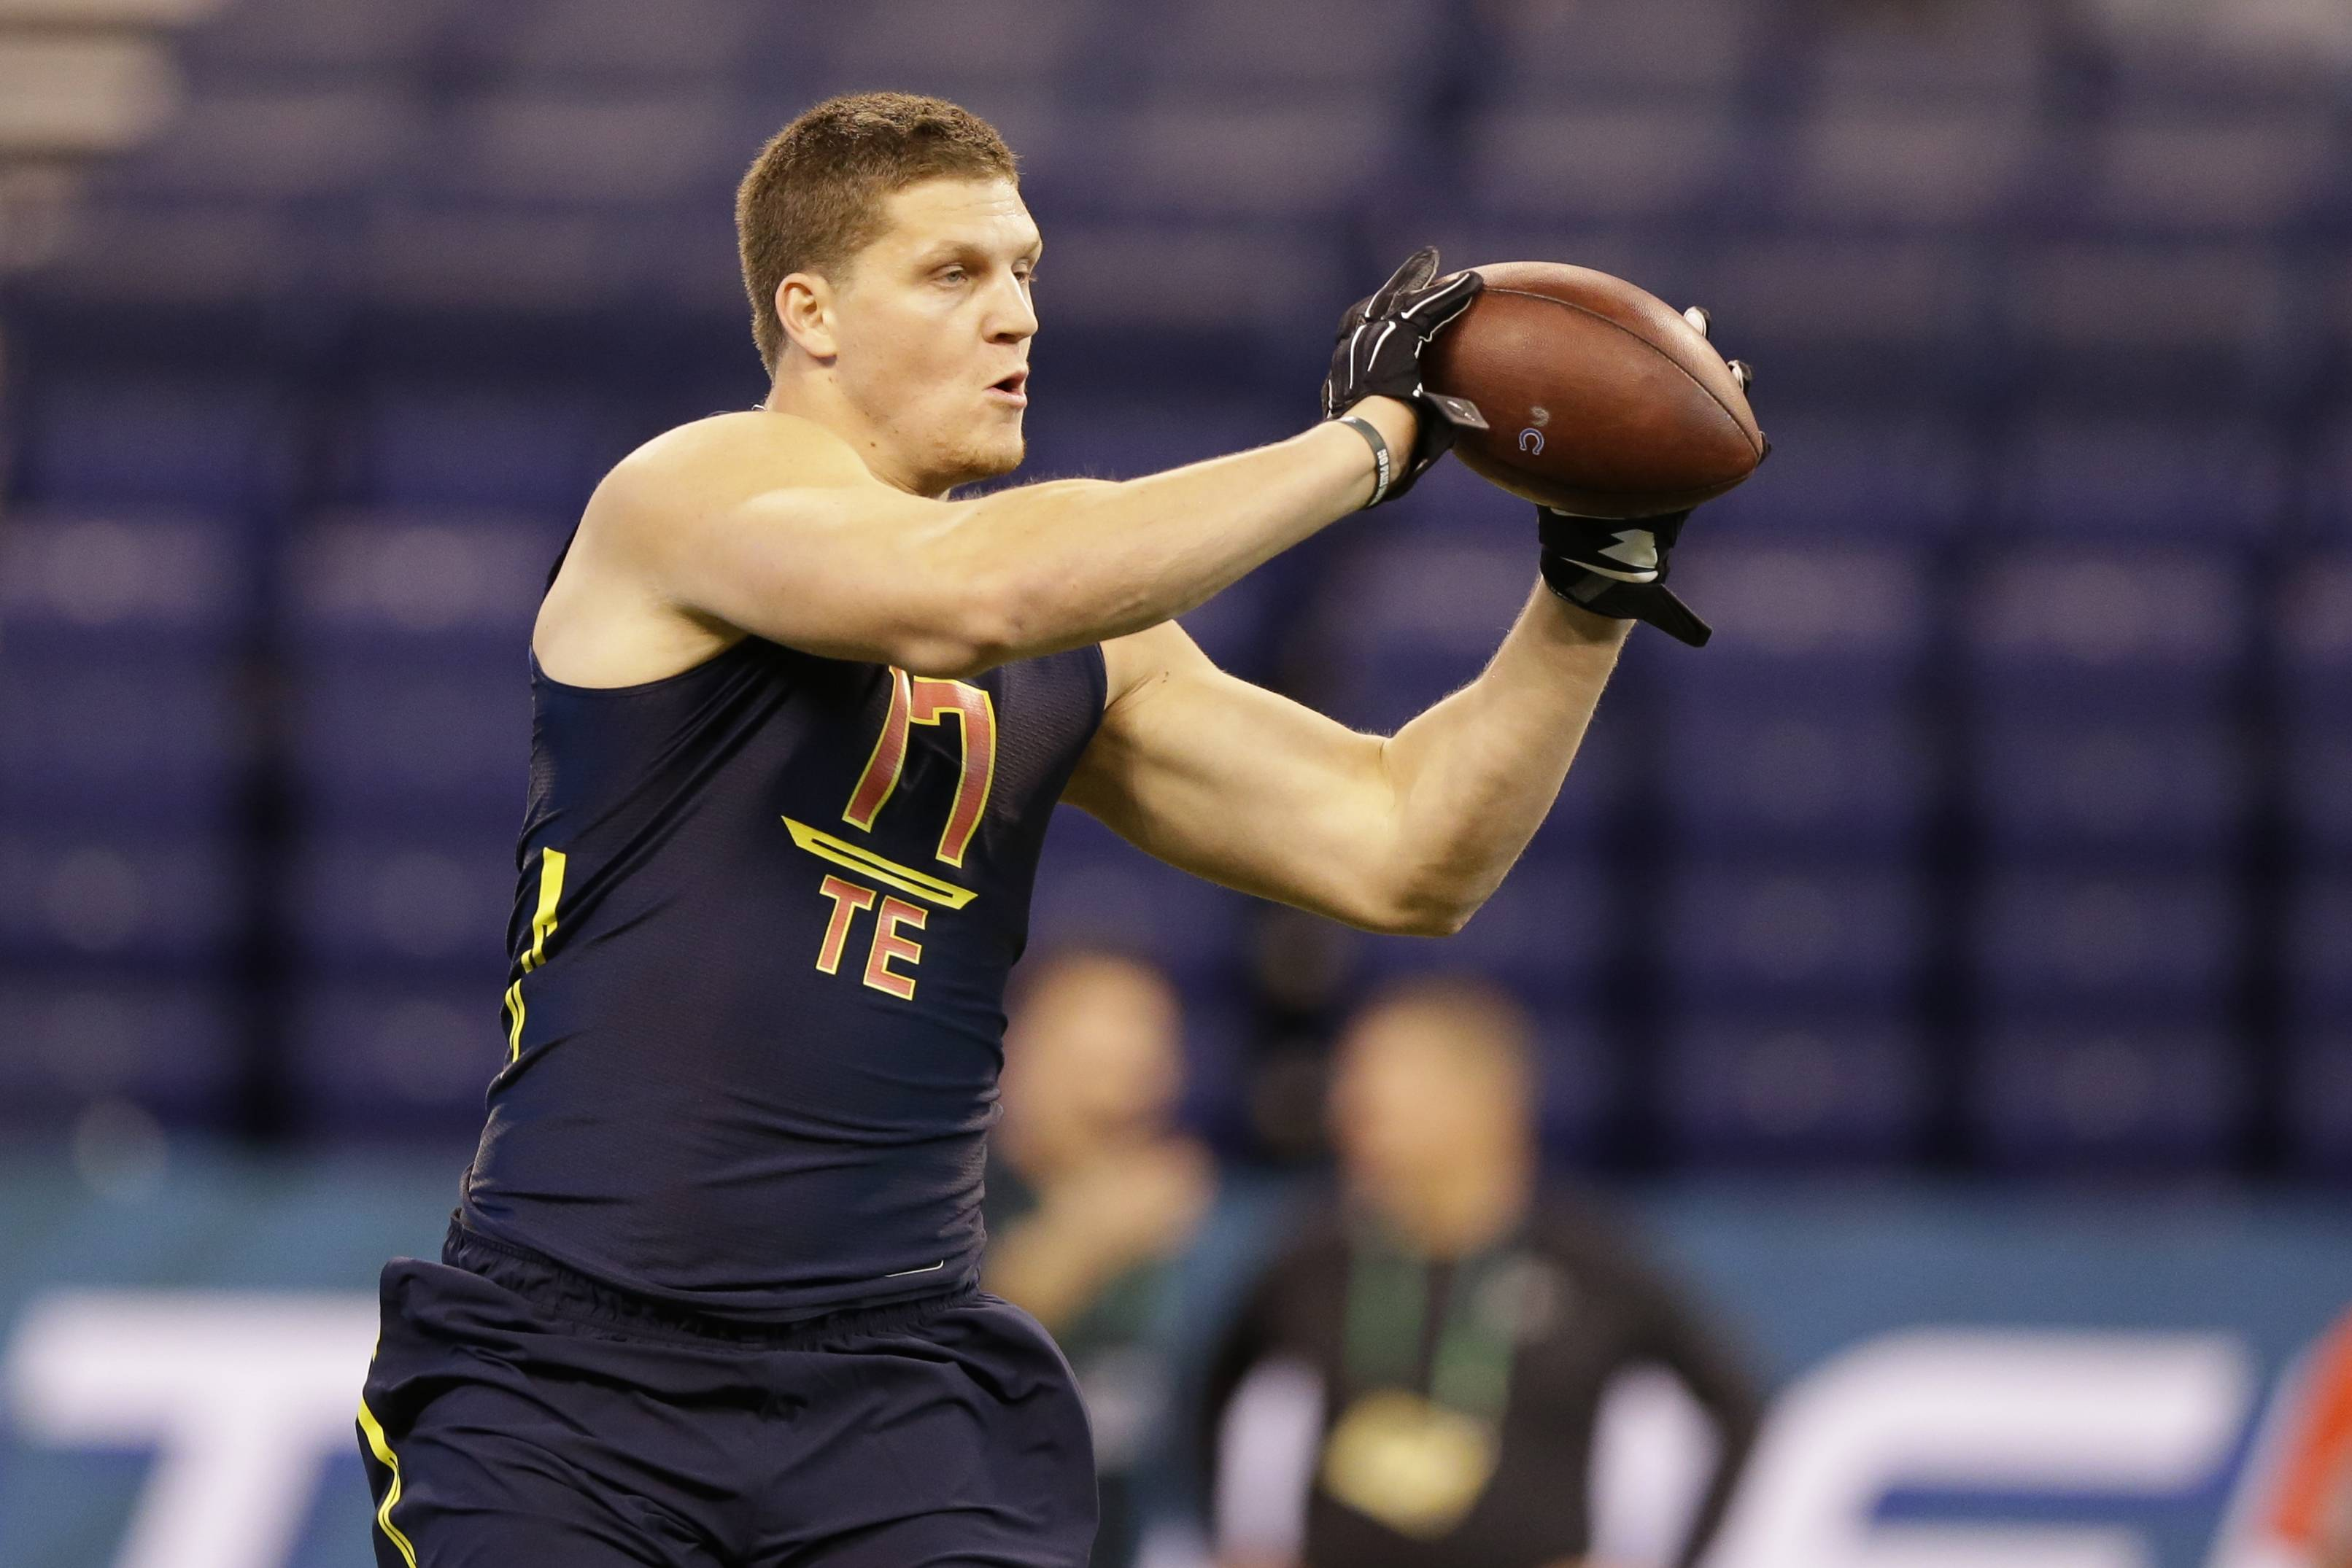 The Bears signed second-round draft pick (No. 45 overall) Adam Shaheen to a four-year deal Friday. The 6-foot-6, 278-pound tight end from Ashland University, led all Division-II tight ends in receptions (57) and yards (867) last season and led all college tight ends with 16 touchdown catches in 11 games, an Ashland single-season record.